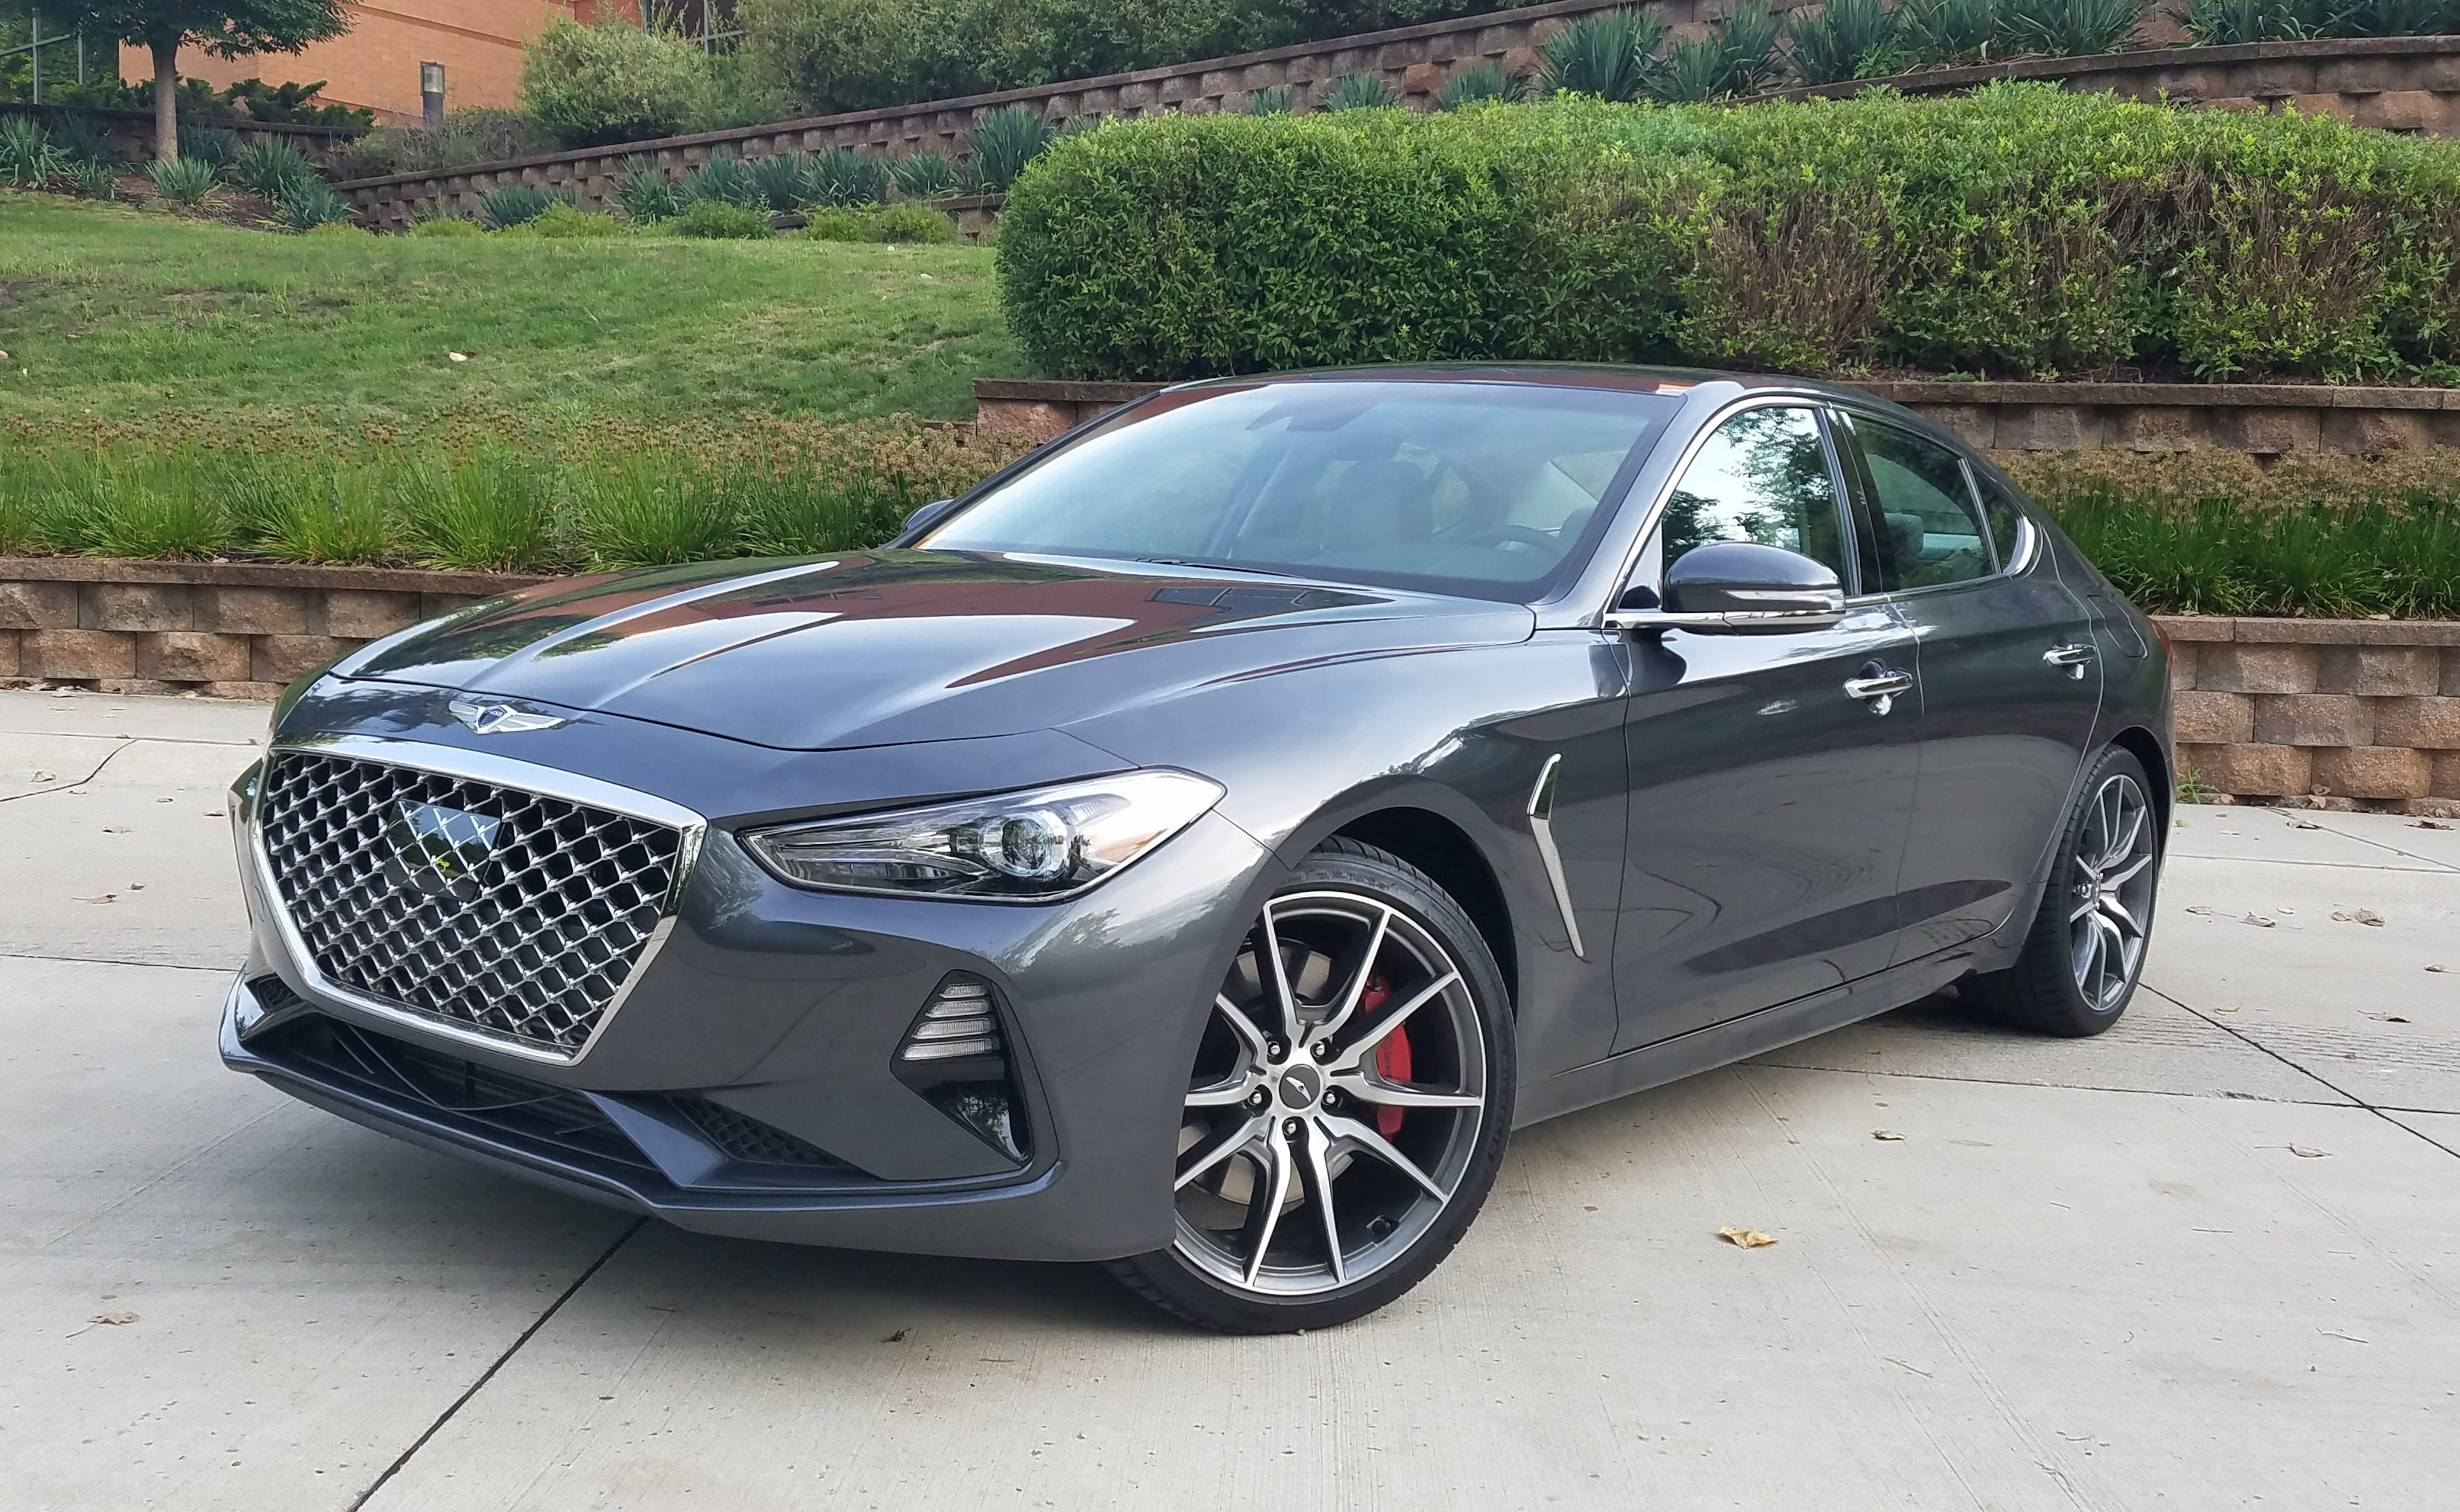 Rivaling the Cadillac ATS and Alfa Romeo Giulia for best-handling car in class, the 2019 Genesis G70 comes in this Sport model with a manual transmission for maximum driver enjoyment.